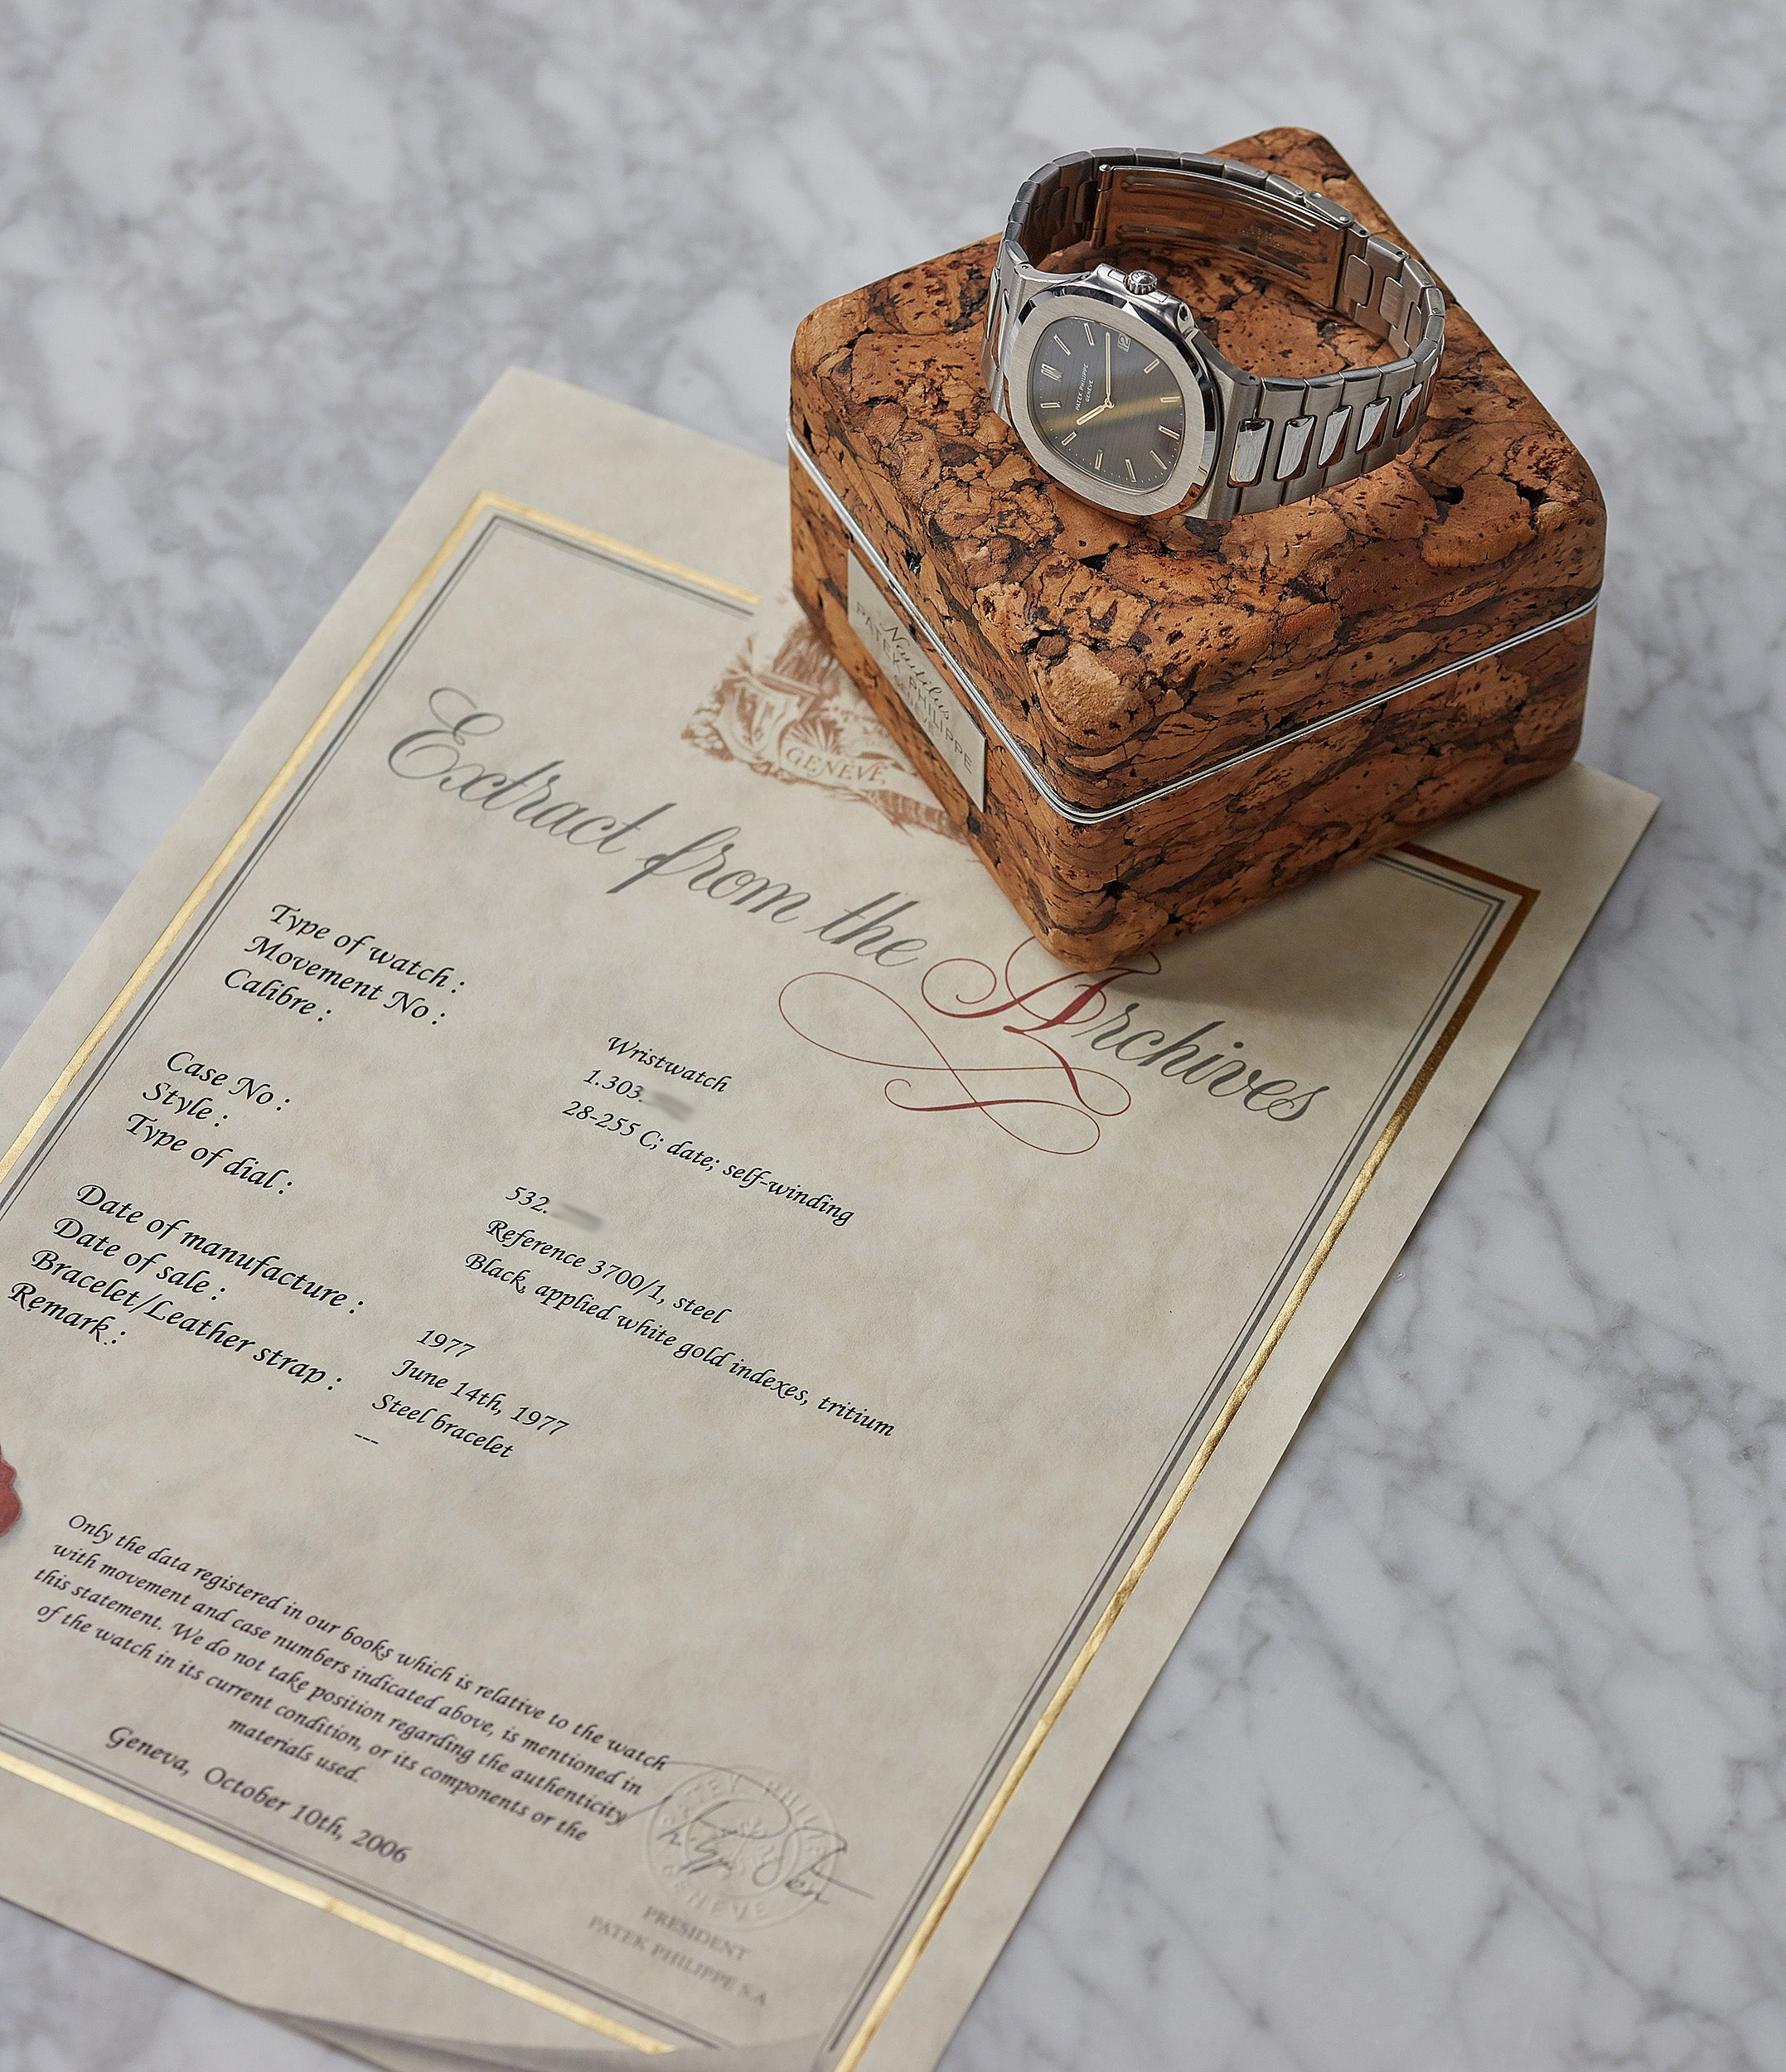 full set Archive Extract Patek Philippe cork box Nautilus 3700/001 sport watch for sale online at A Collected Man London UK specialist of rare watches